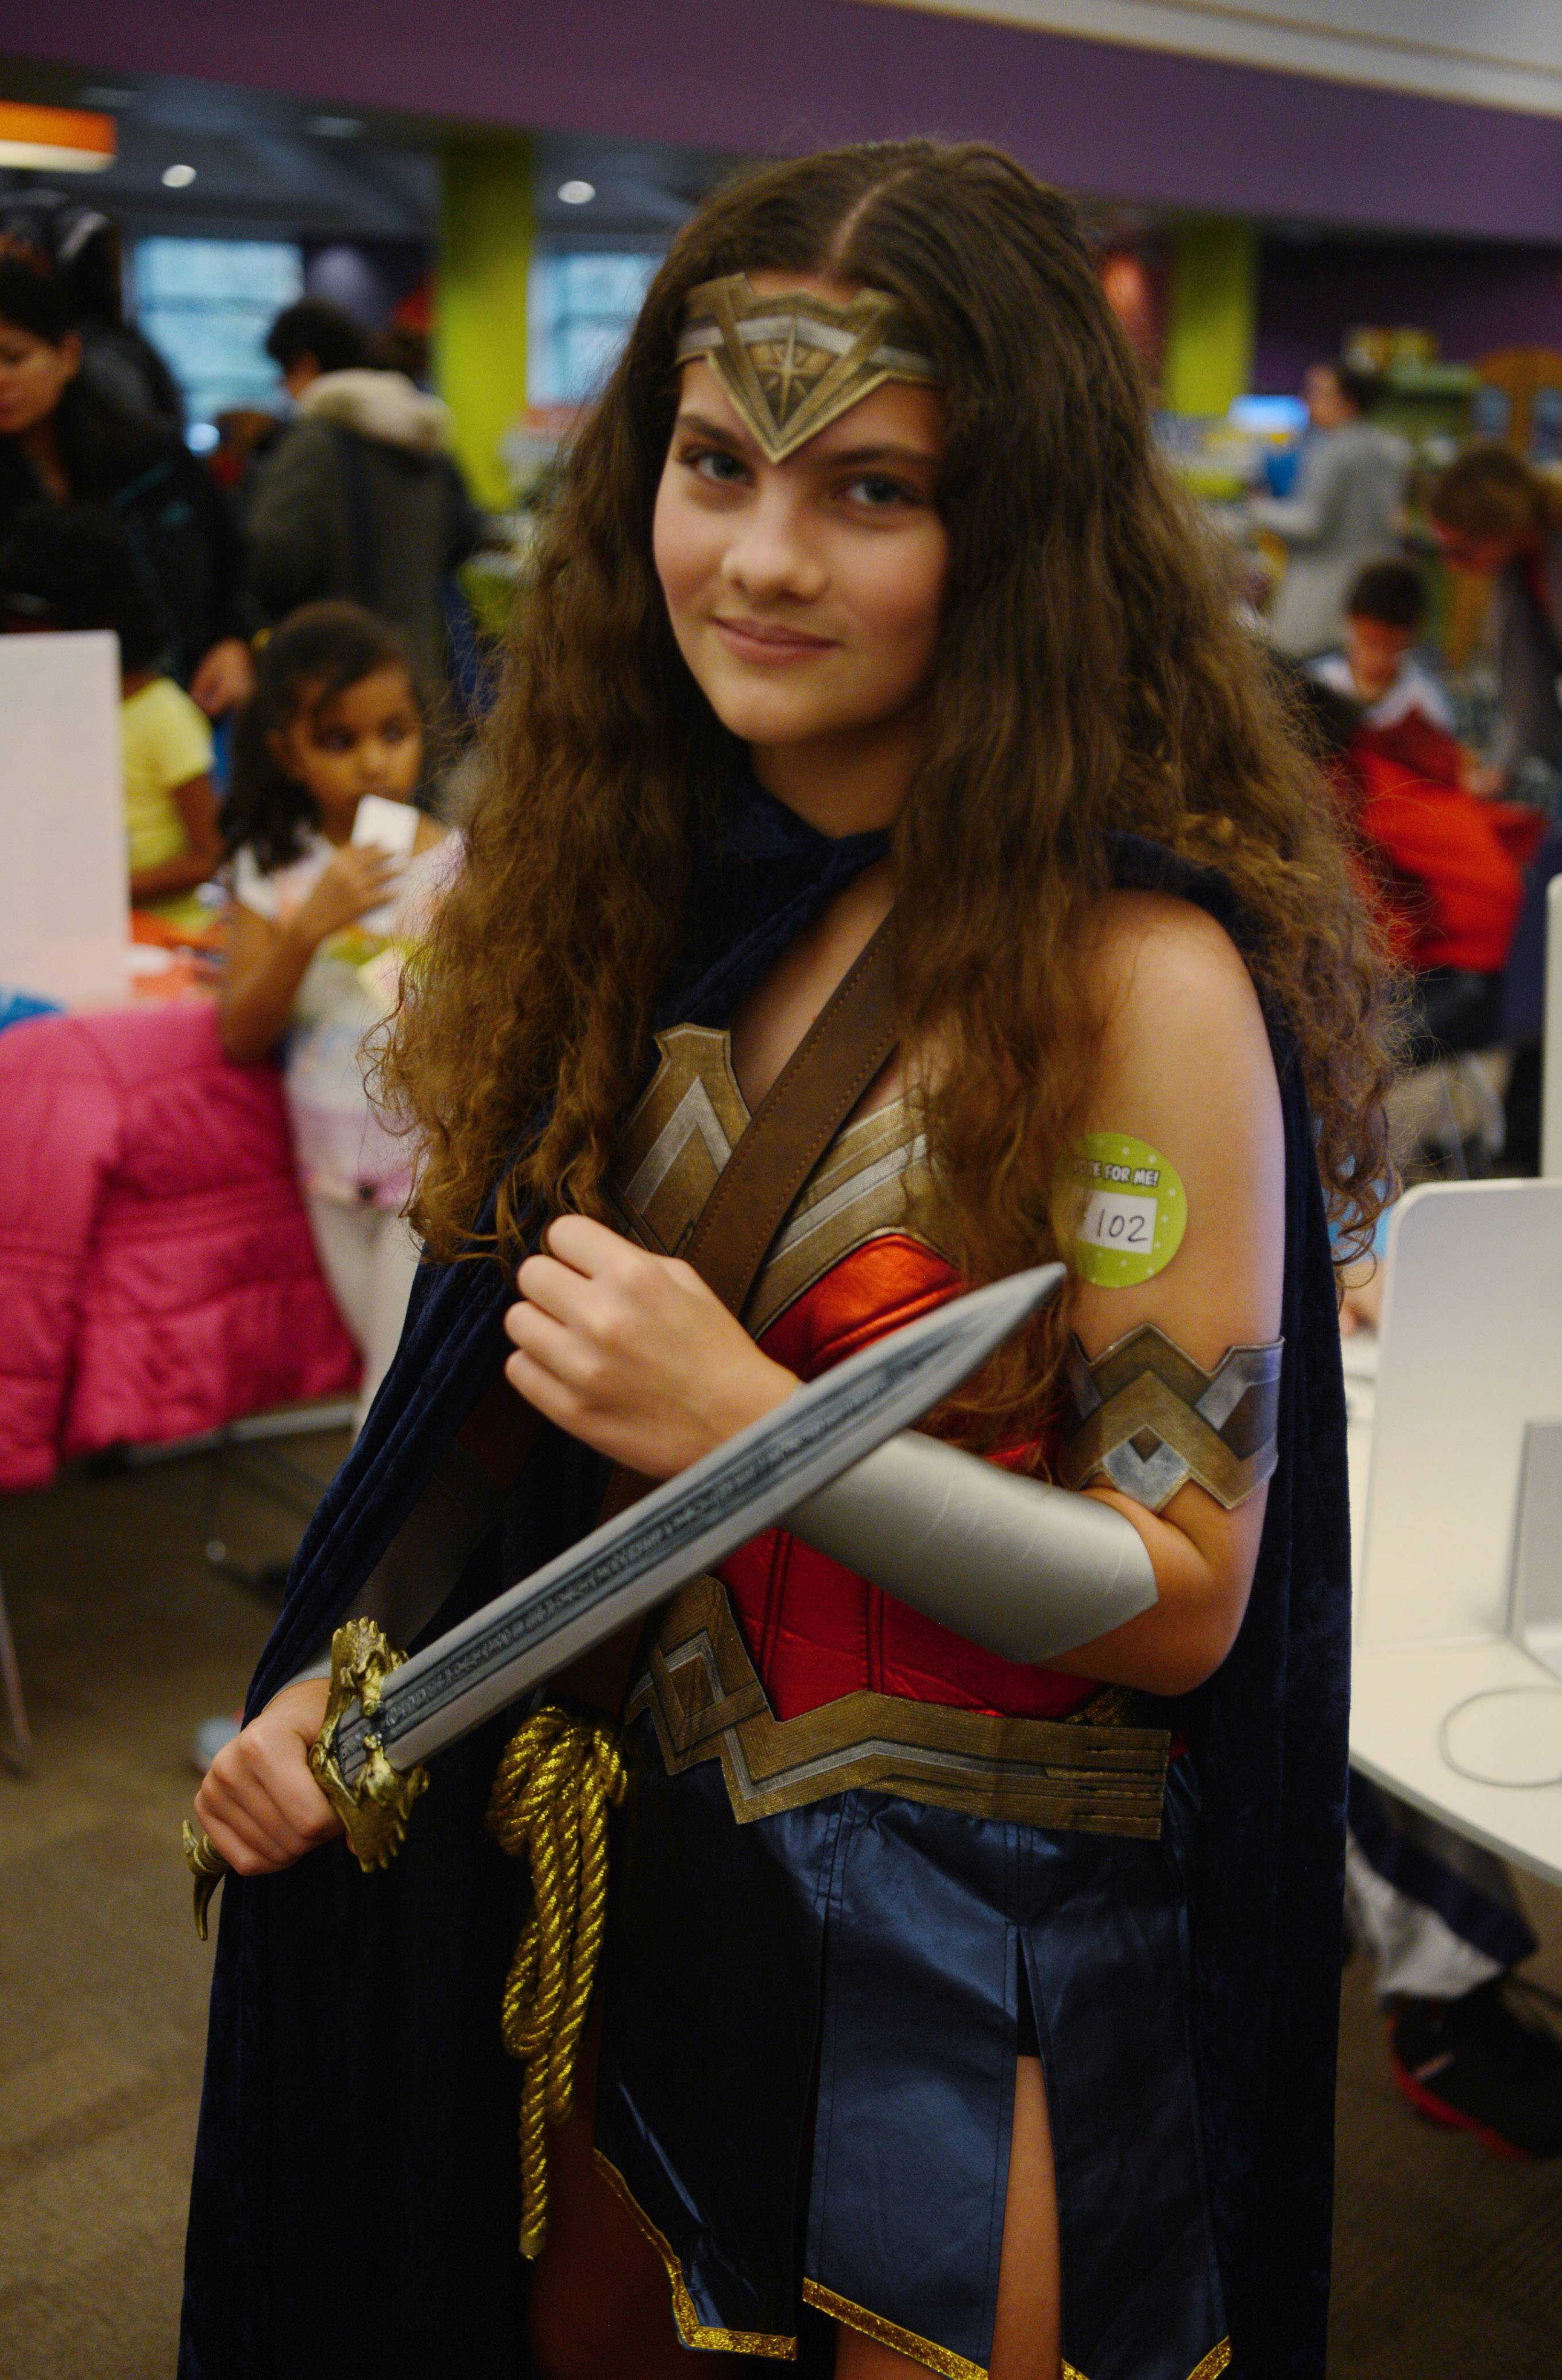 Emma Doiron, 13, of Lincolnshire is dressed as Wonder Woman during the fourth annual Mini Comic Con at the Vernon Area Public Library in Lincolnshire Saturday.